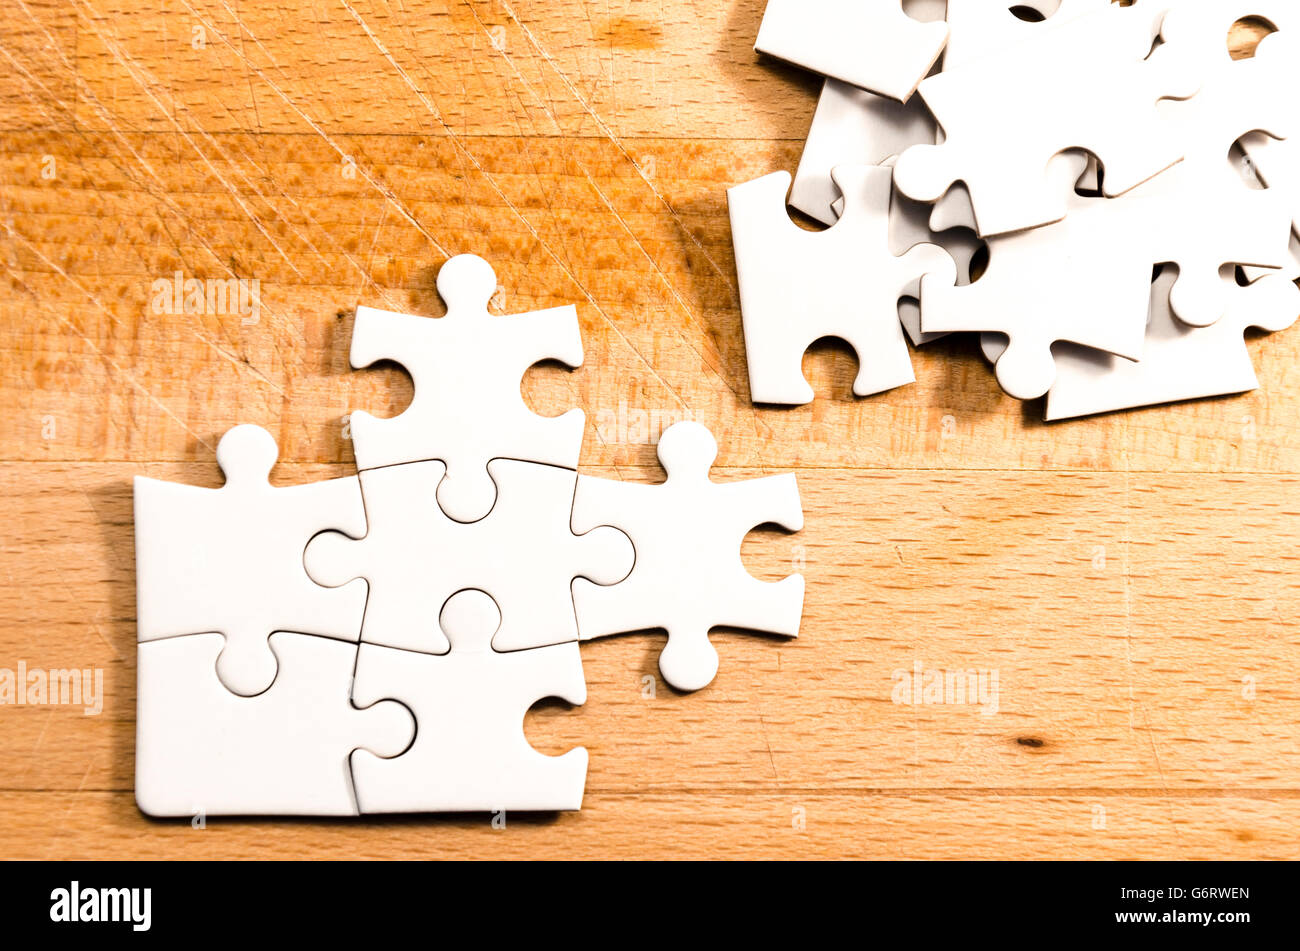 white jigsaw/puzzle unfinished over a wooden table background, symbol of problem solving - Stock Image